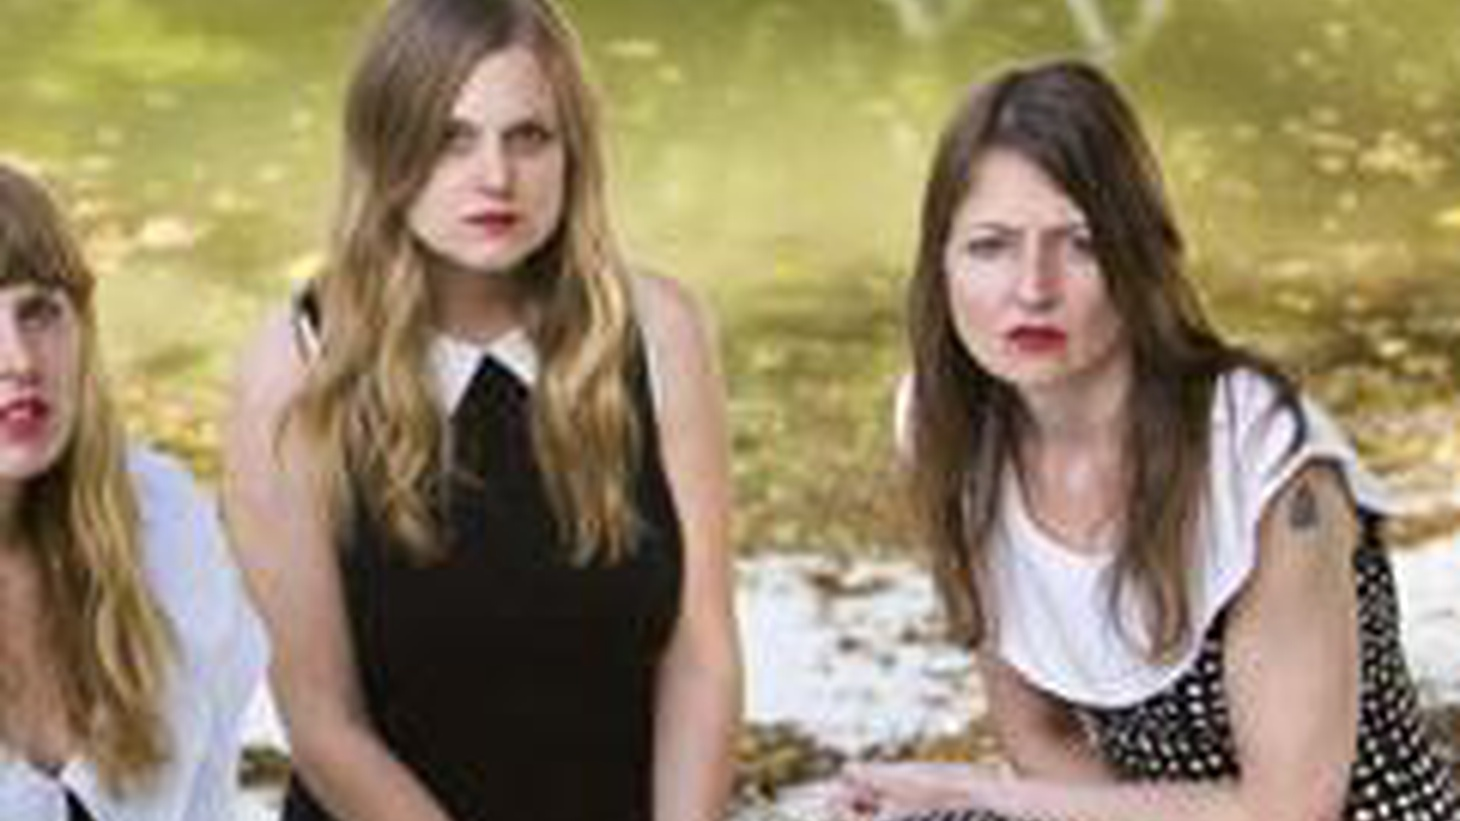 The Chapin Sisters are a trio of siblings that have a beautiful, mournful way of harmonizing. Their bittersweet songs wrestle with love and heartbreak...